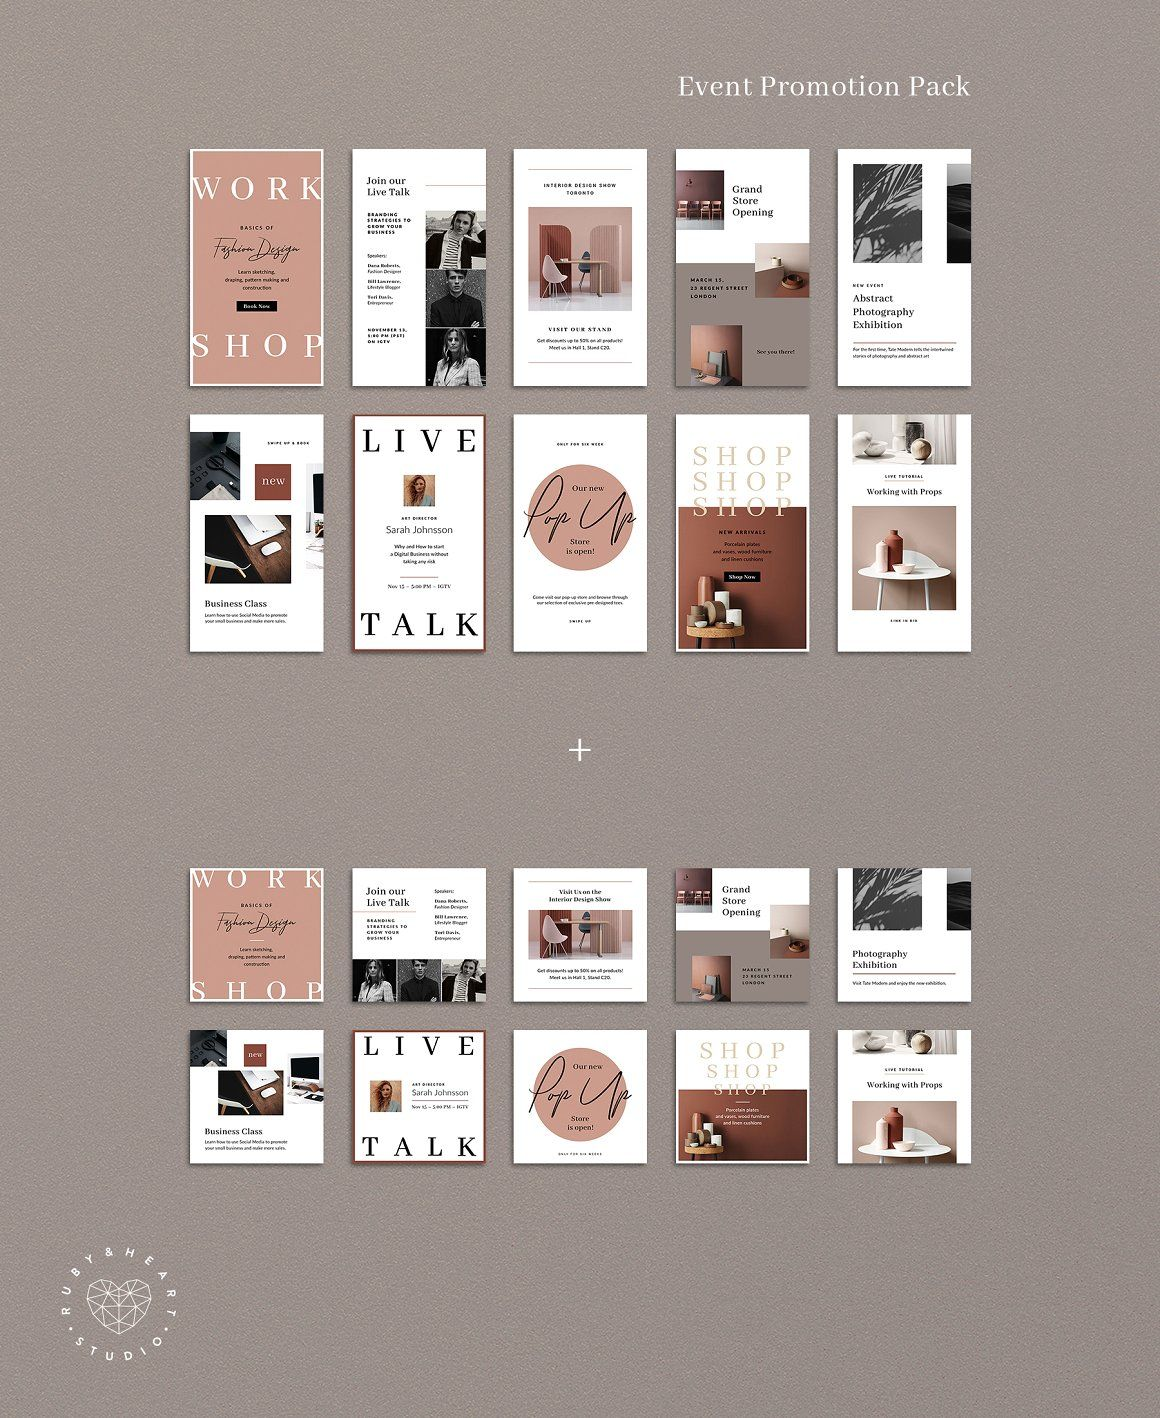 Animated Event Promo Instagram Pack Event Promotion Event Template Promotion Template Instagram Templat Event Promo Instagram Template Event Promotion